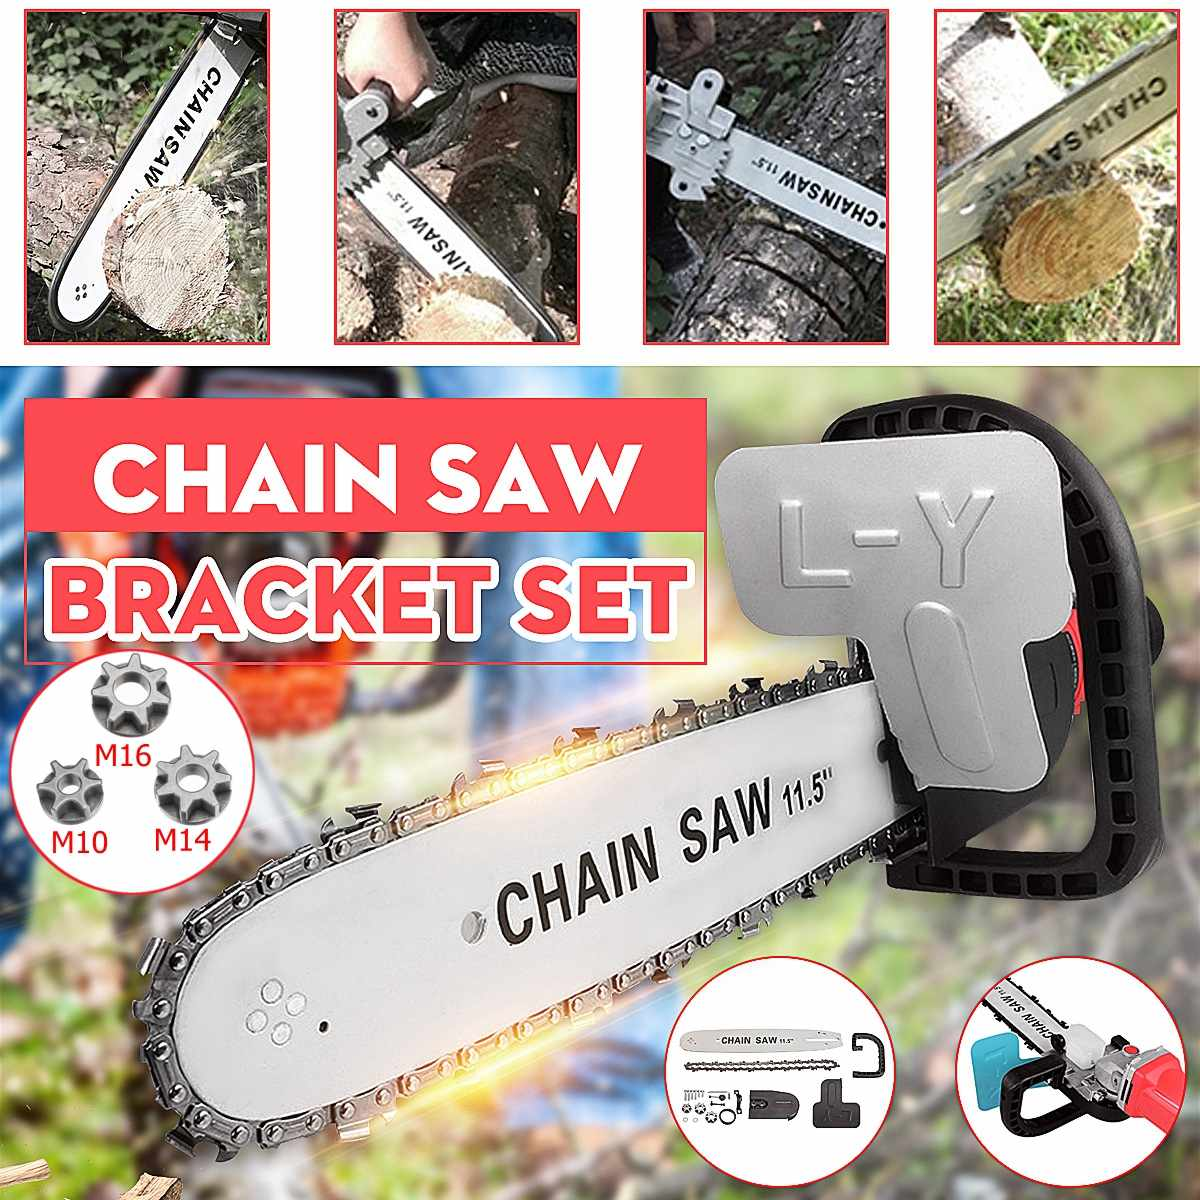 Electric chain saw converter for 100/125/150 angle grinder substation chain saw automatic refueling electric chain sawElectric chain saw converter for 100/125/150 angle grinder substation chain saw automatic refueling electric chain saw